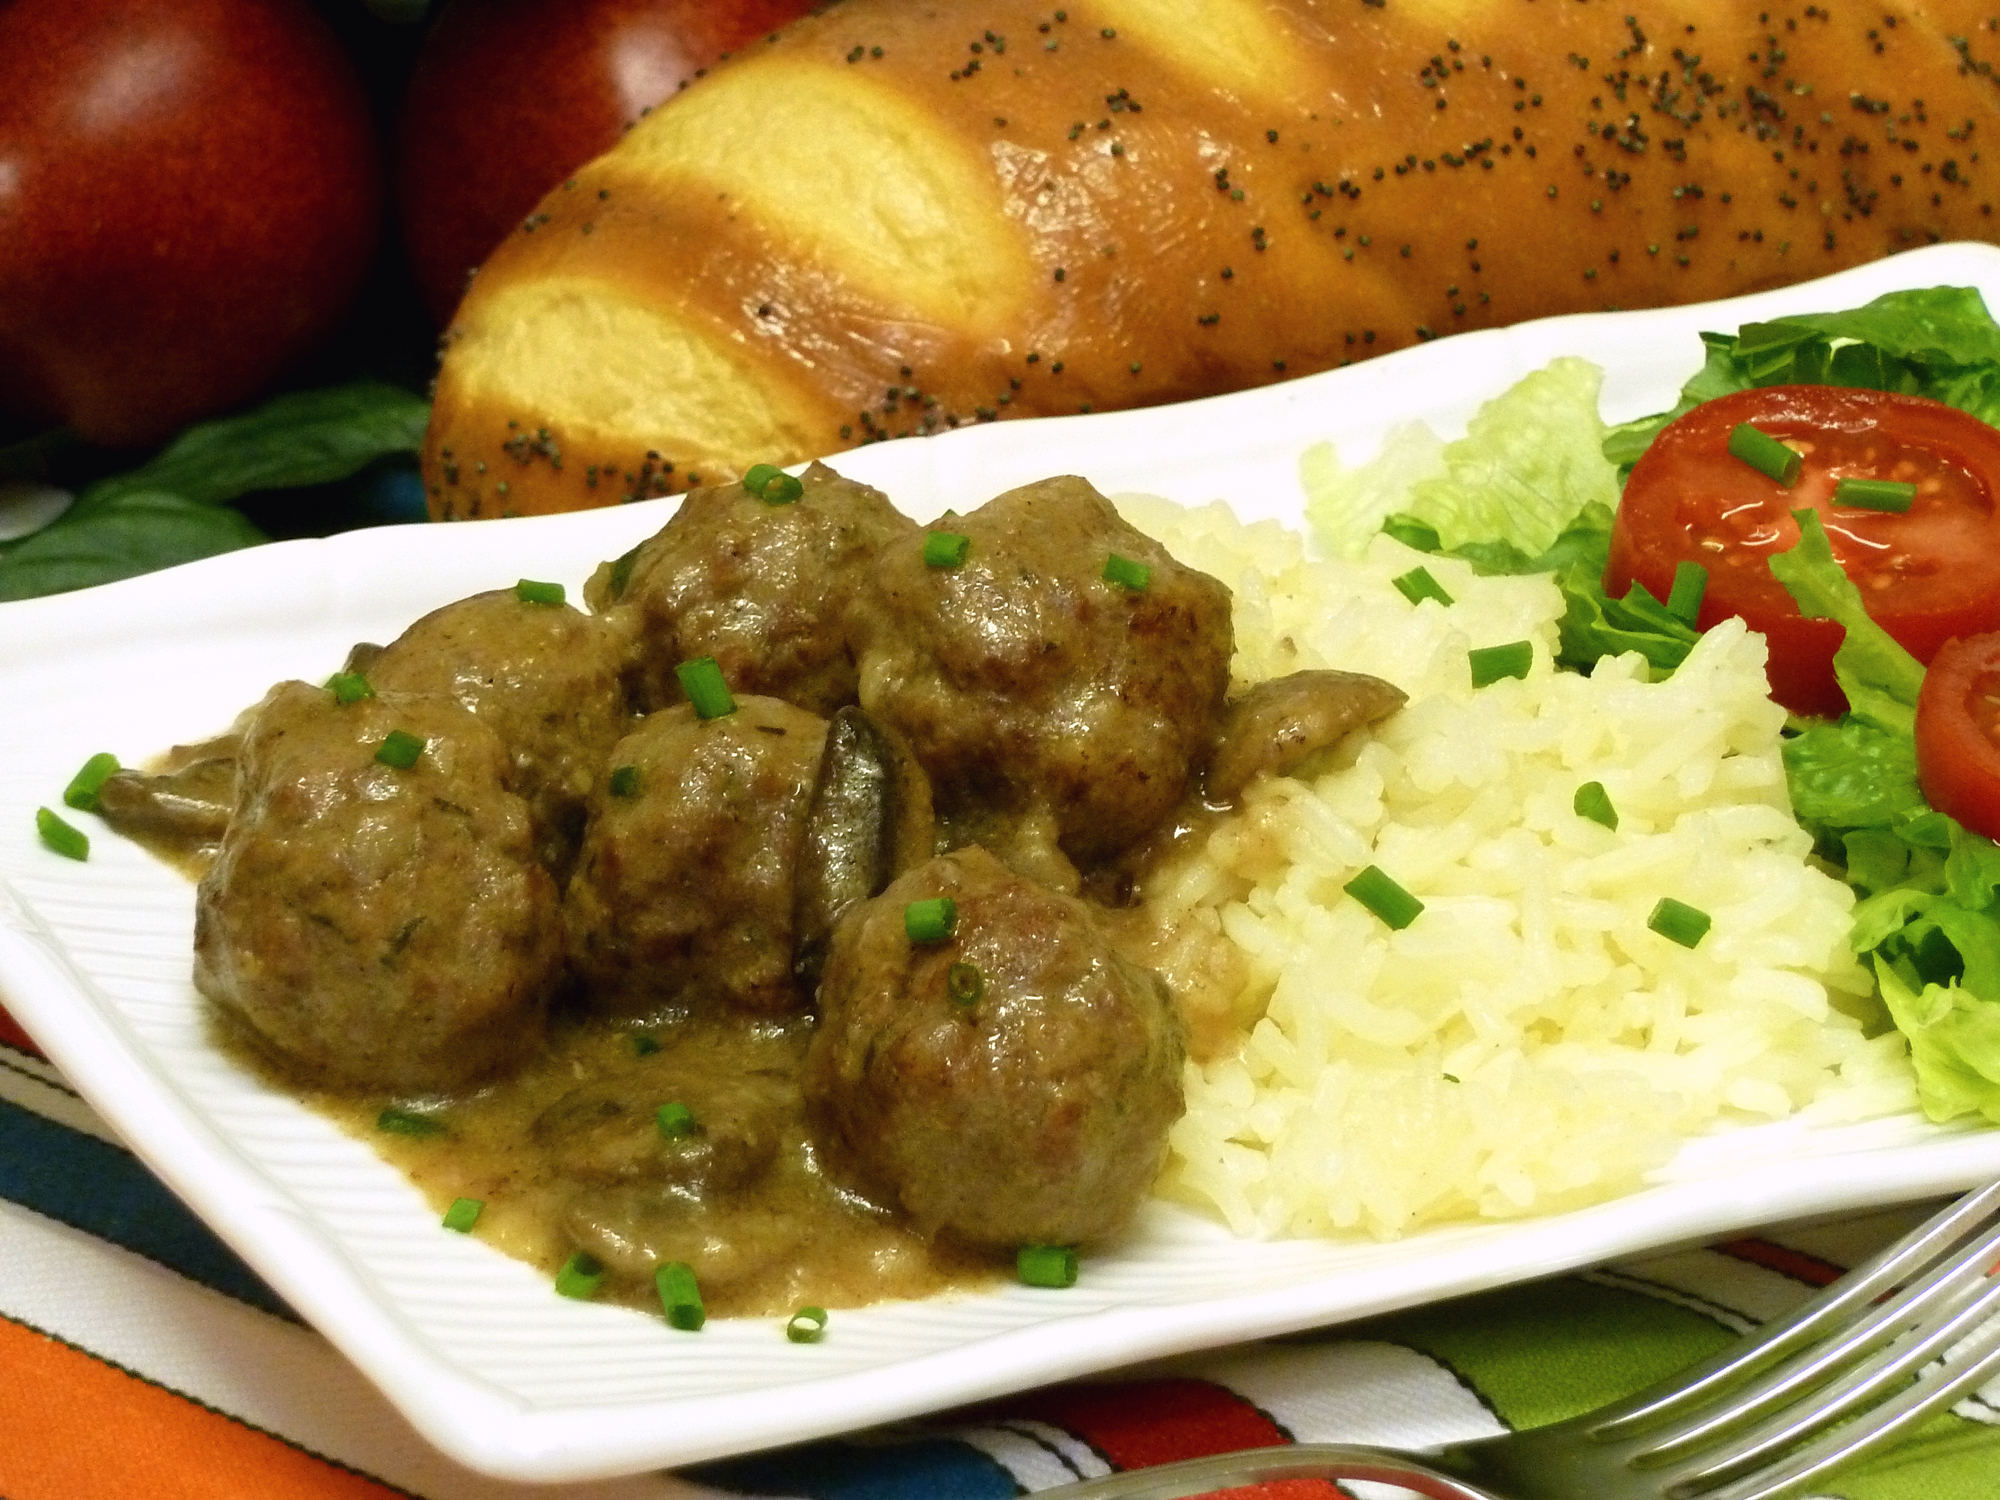 Enjoy flavorful mini meatballs as an entree with seasoned rice and a salad.